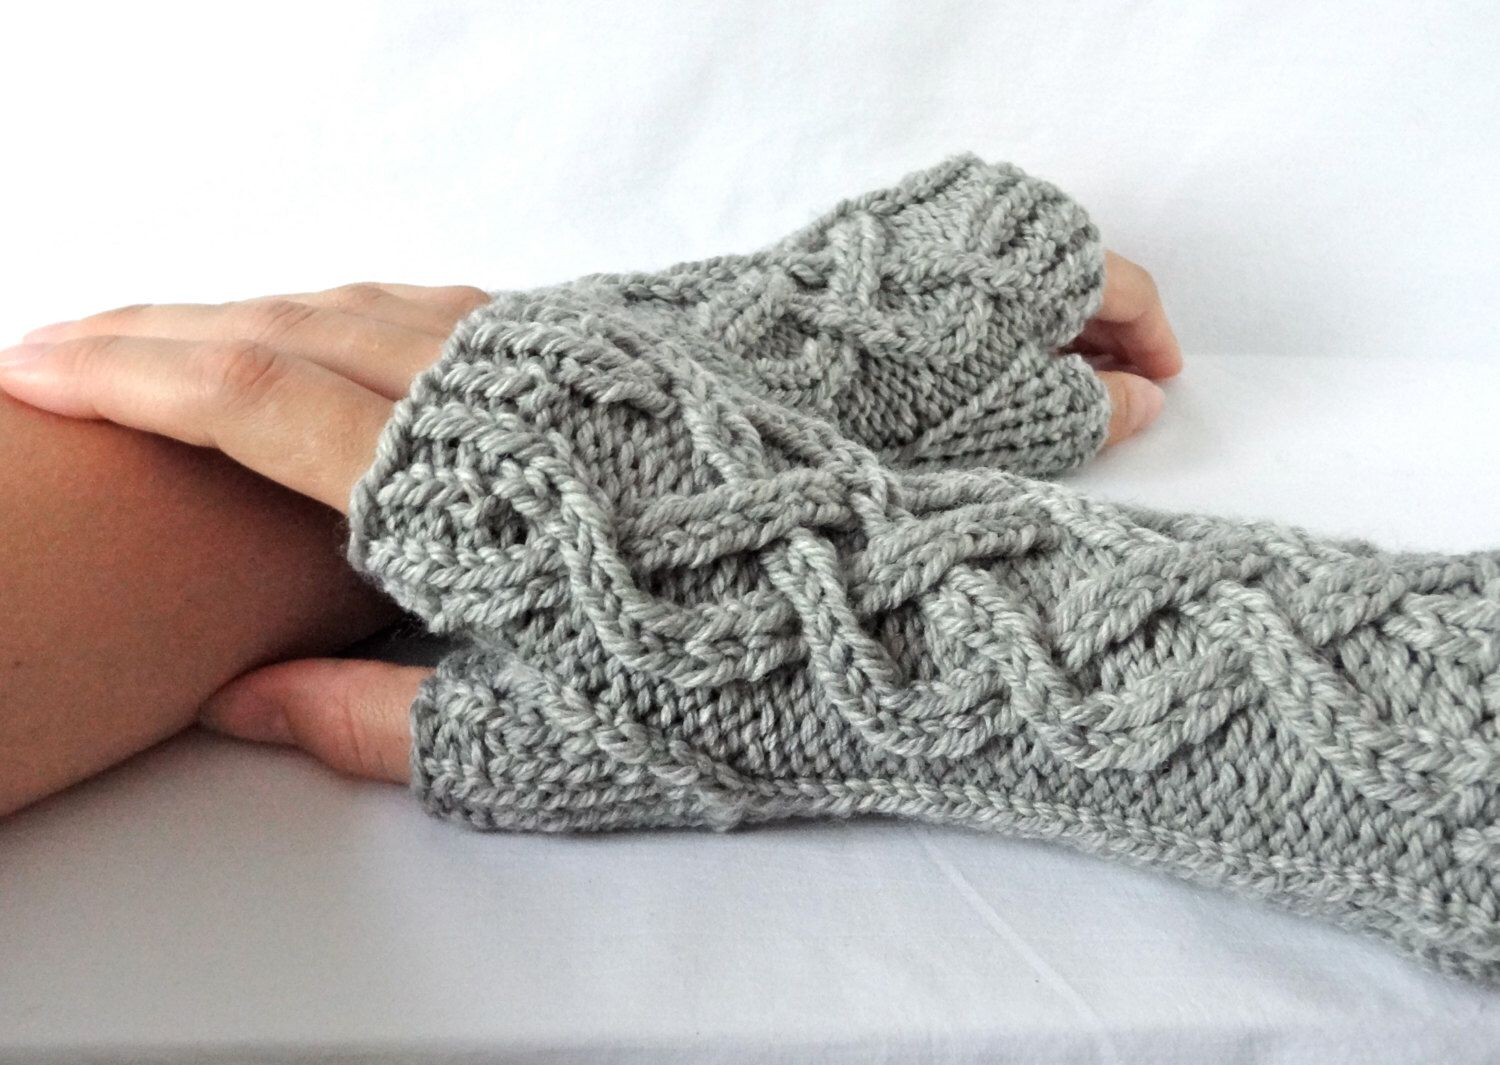 Celtic Cable Knit Fingerless Gloves Custom Knitwear Gifts for Her ...